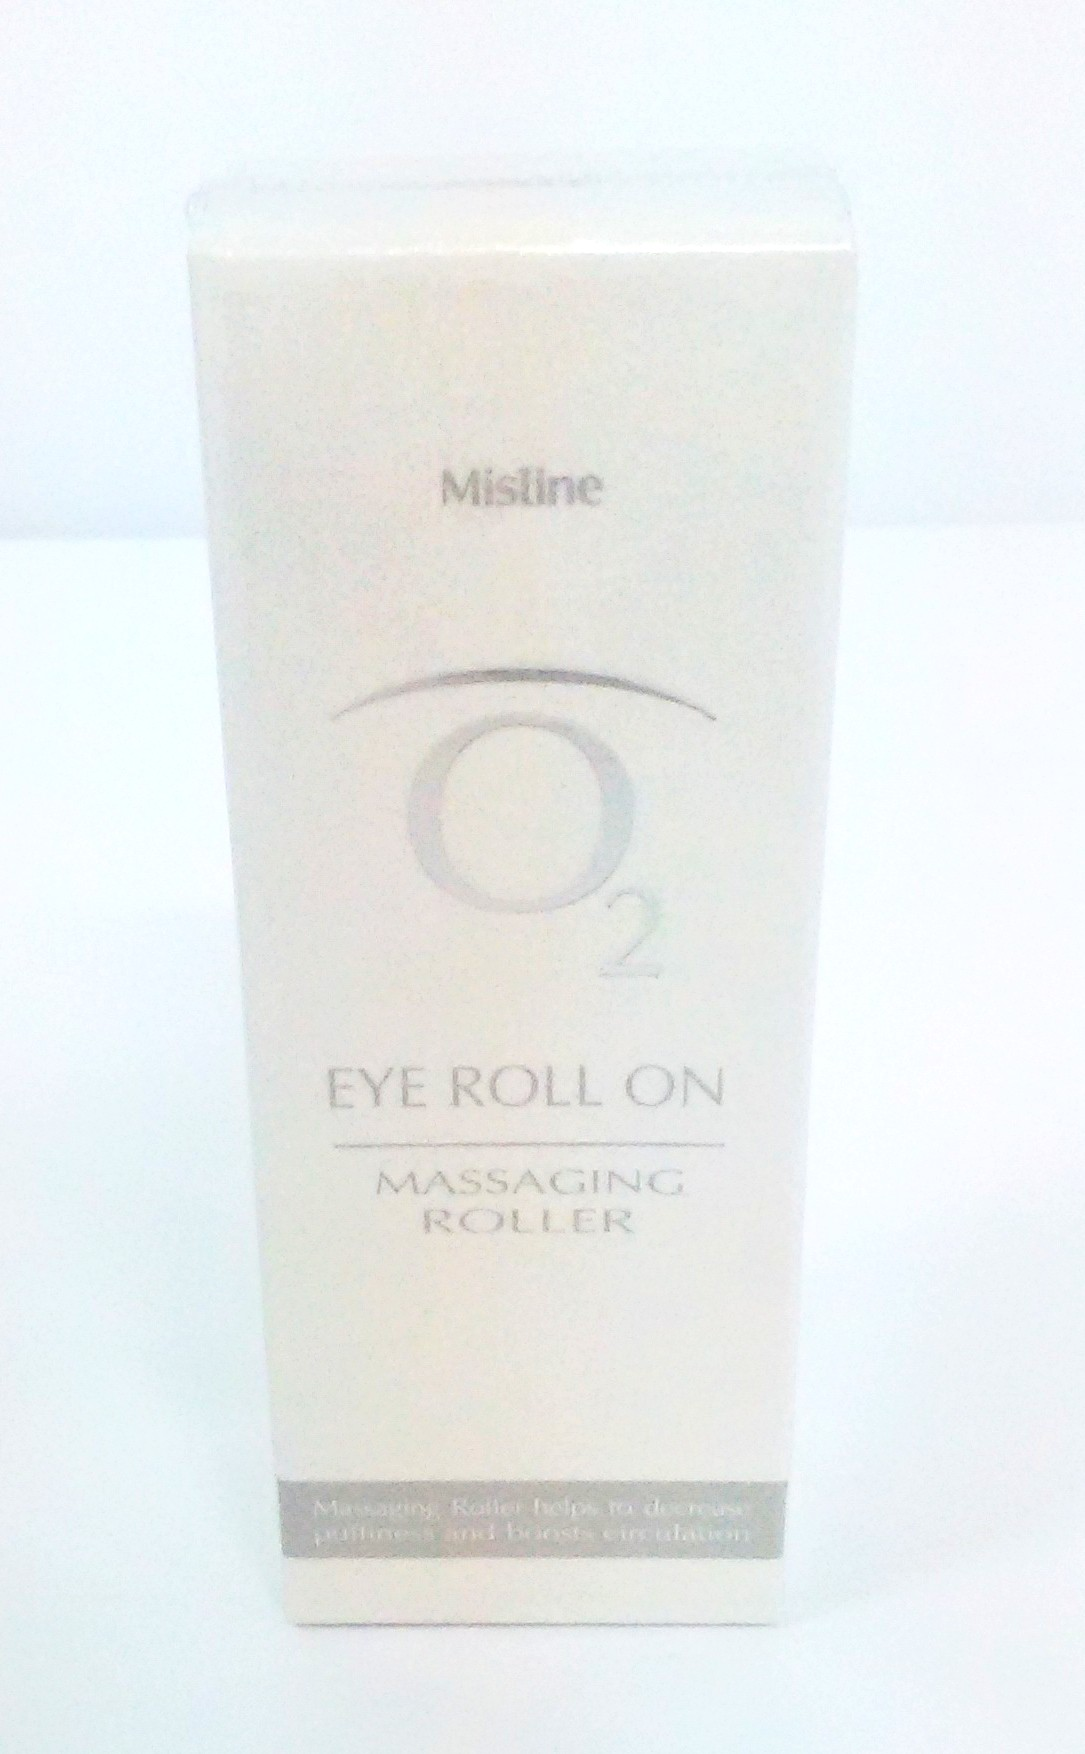 Mistine EYE ROLL ON O2 MASSAGING ROLLER 目の周りの黒ずみ、しわ